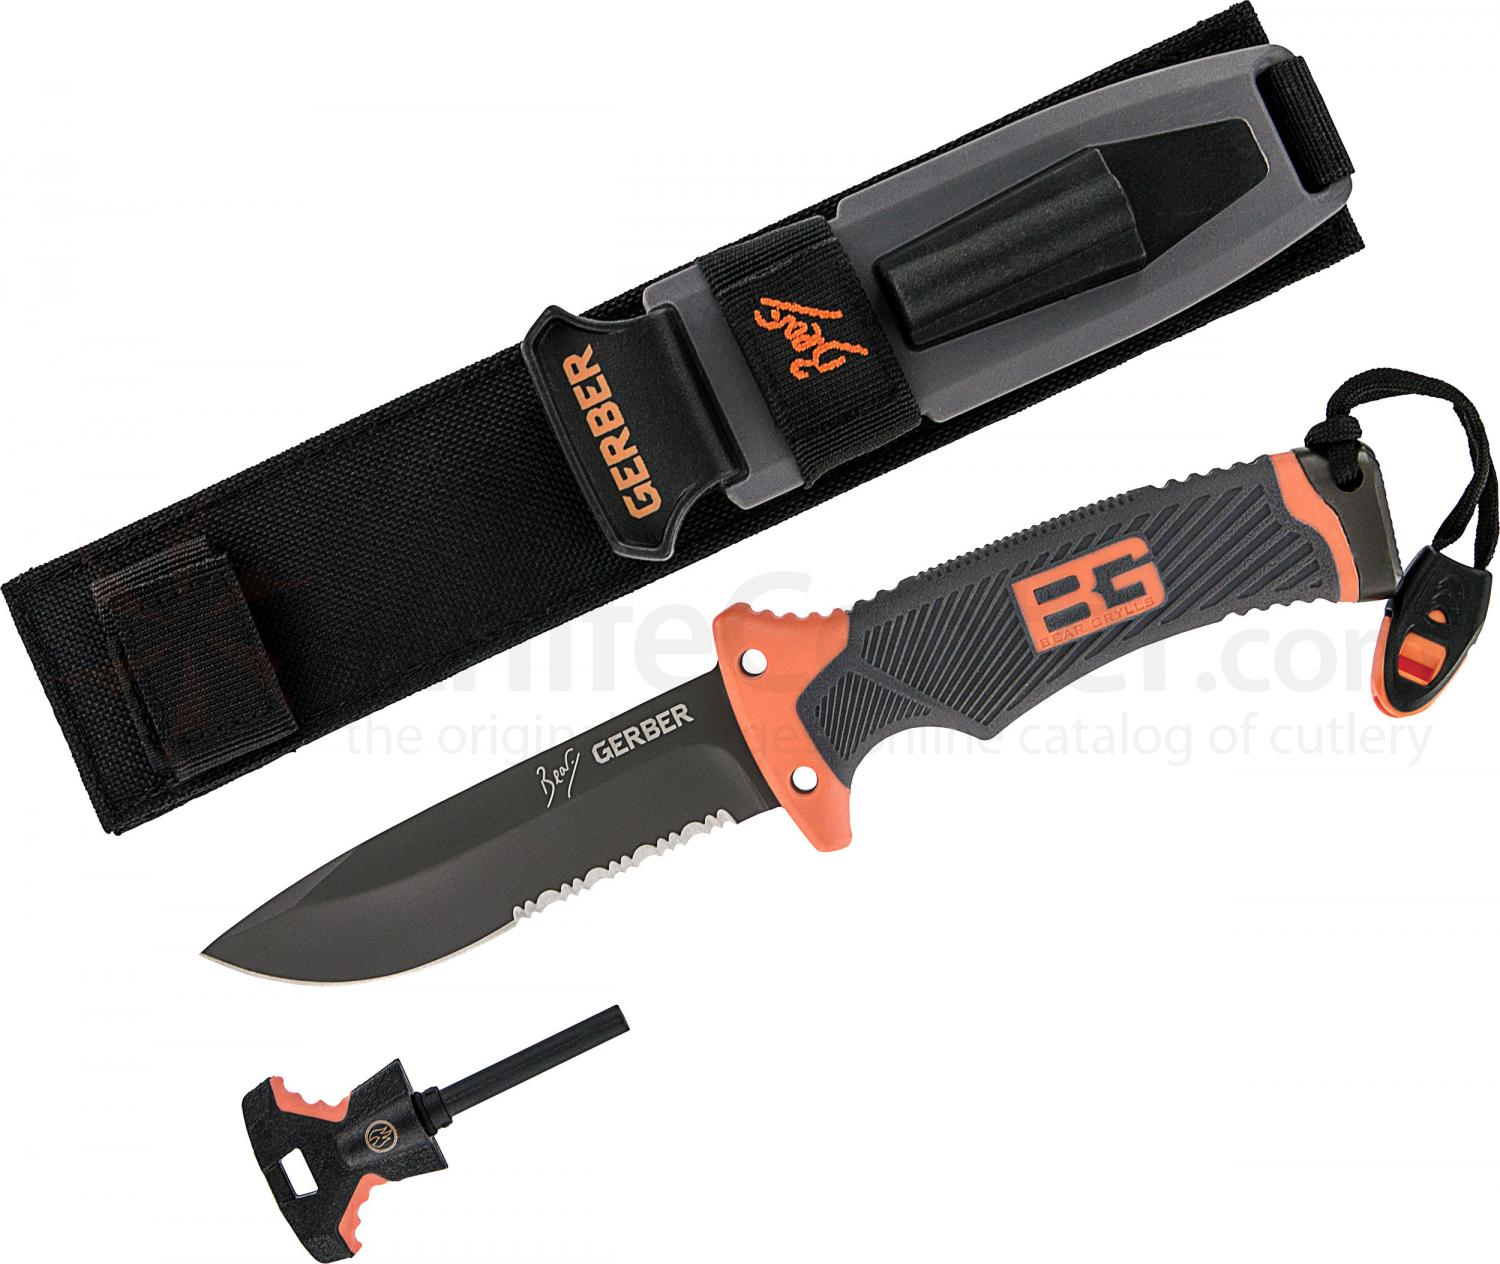 Gerber 31-000751 Bear Grylls Survival Knife 4.8 inch Combo Blade, Rubber Grip Handle